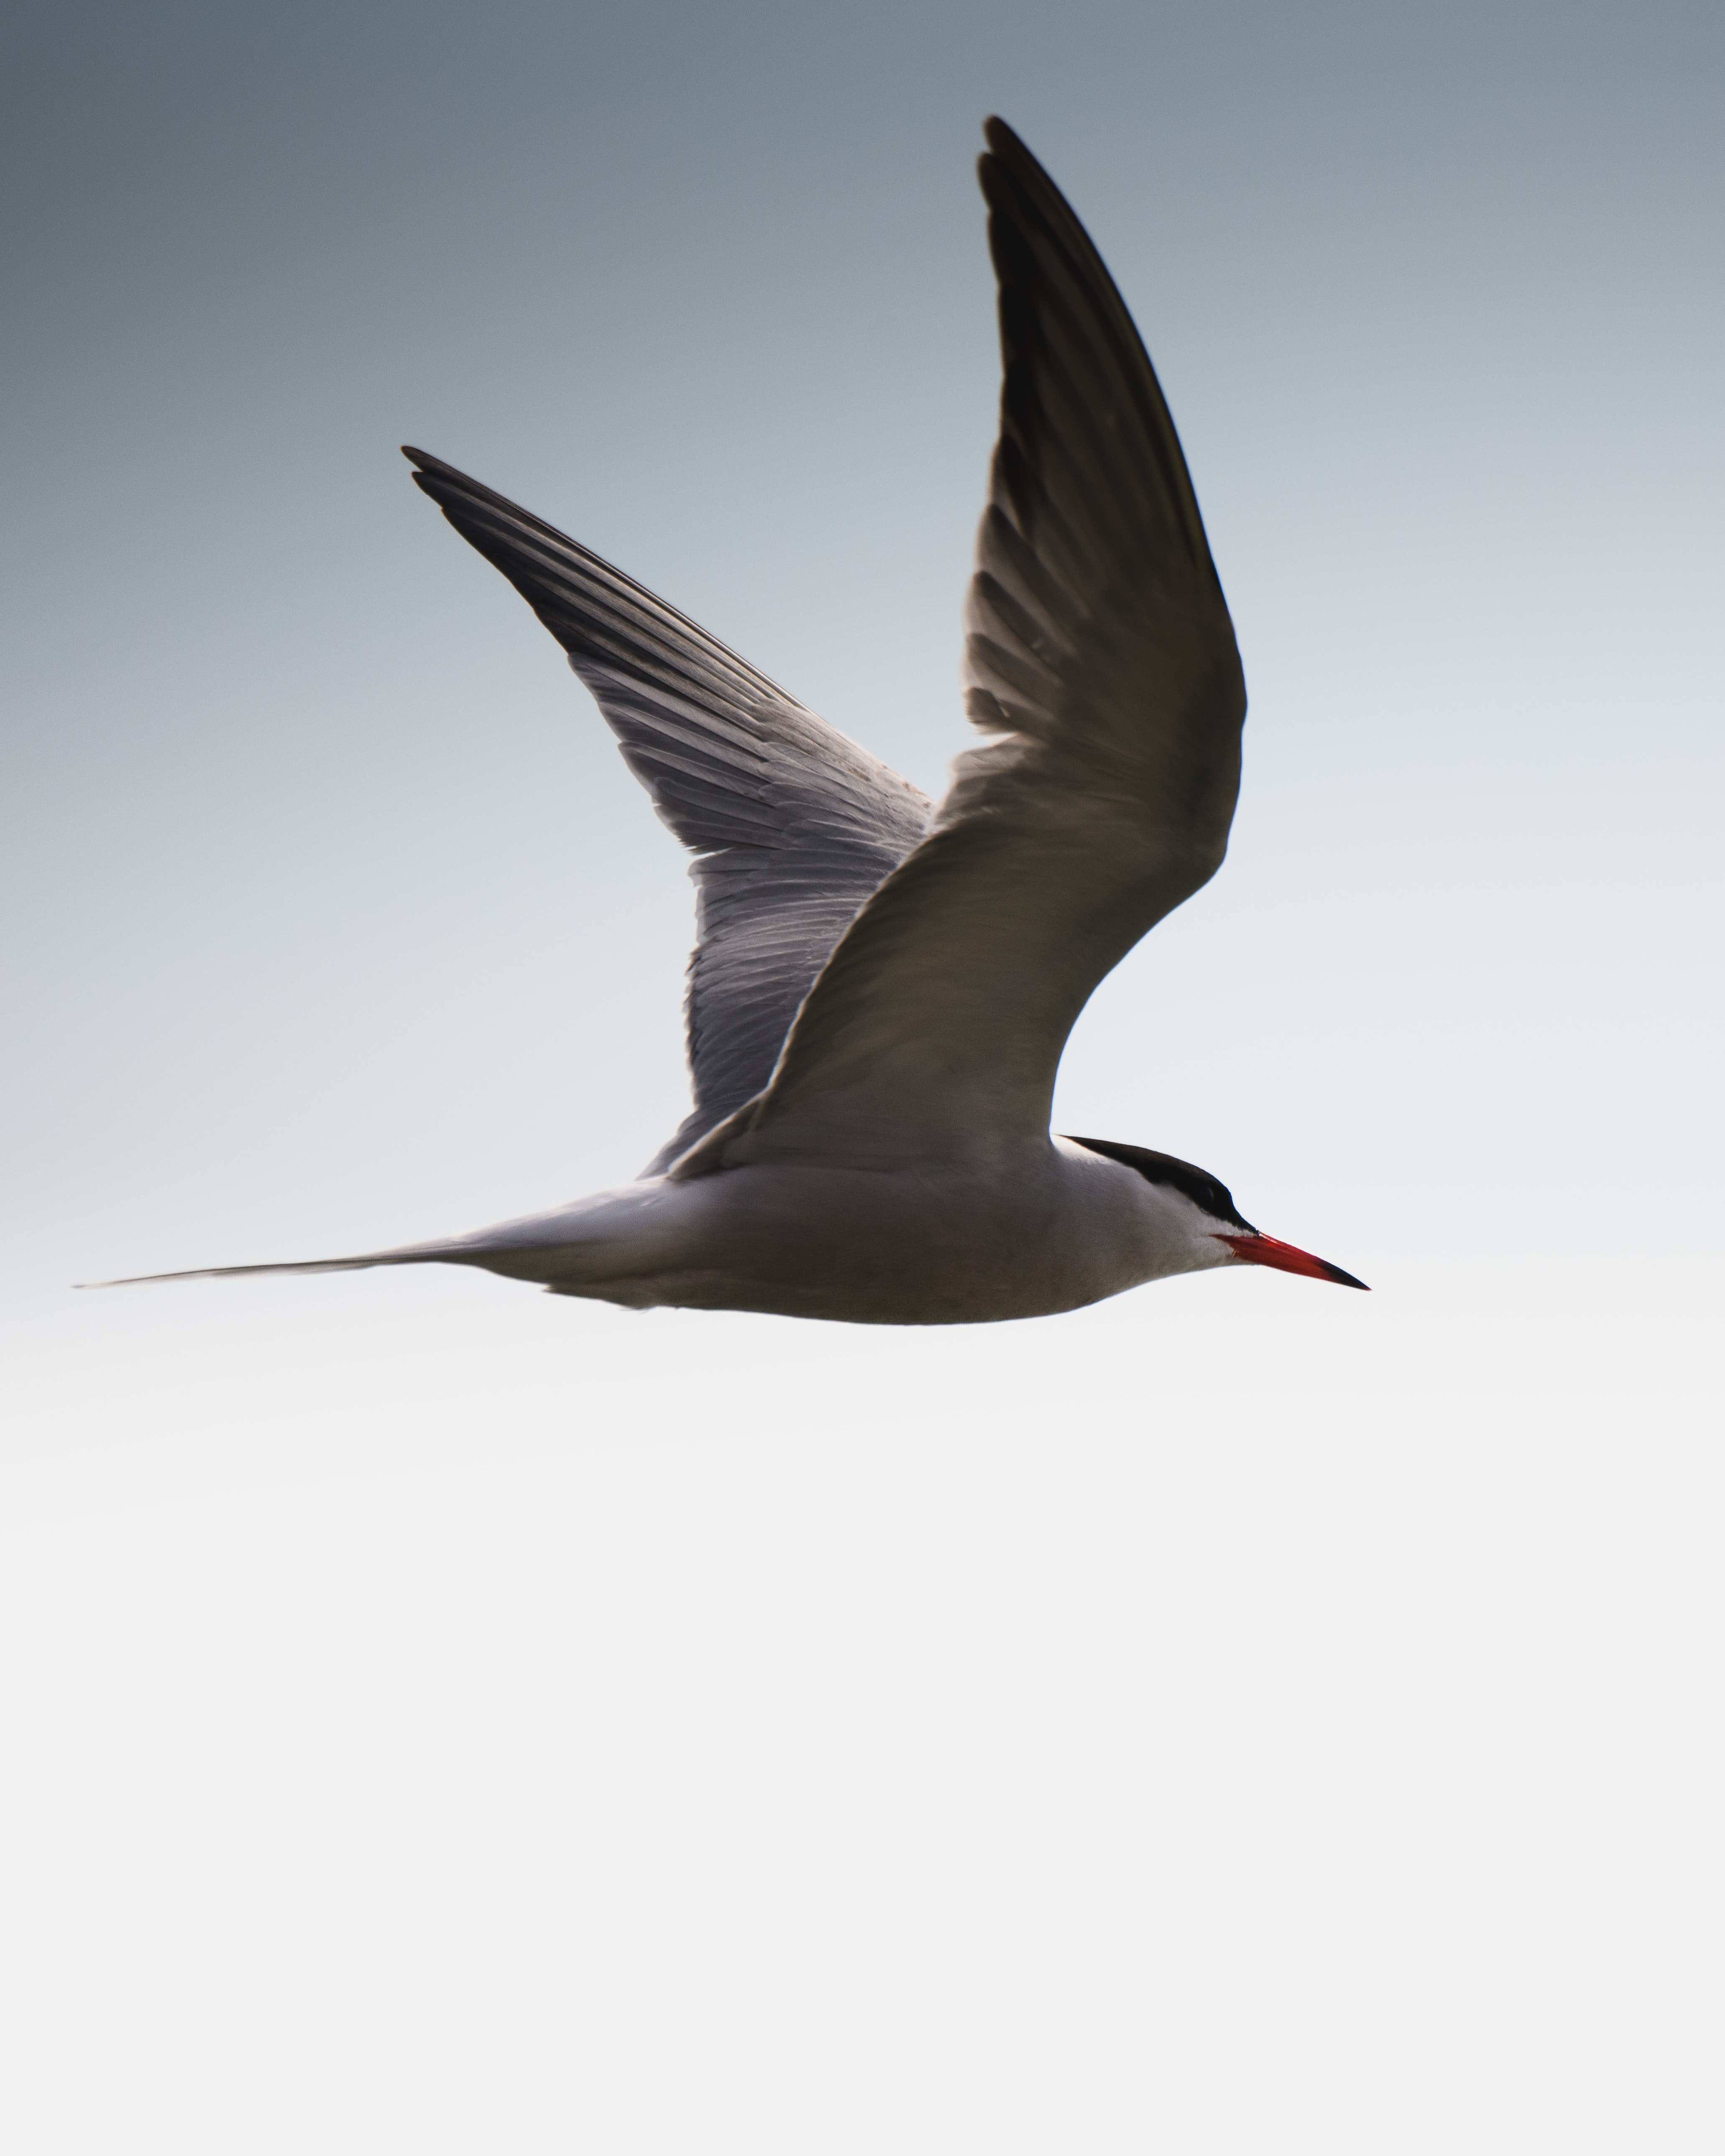 photography of white and gray flying bird